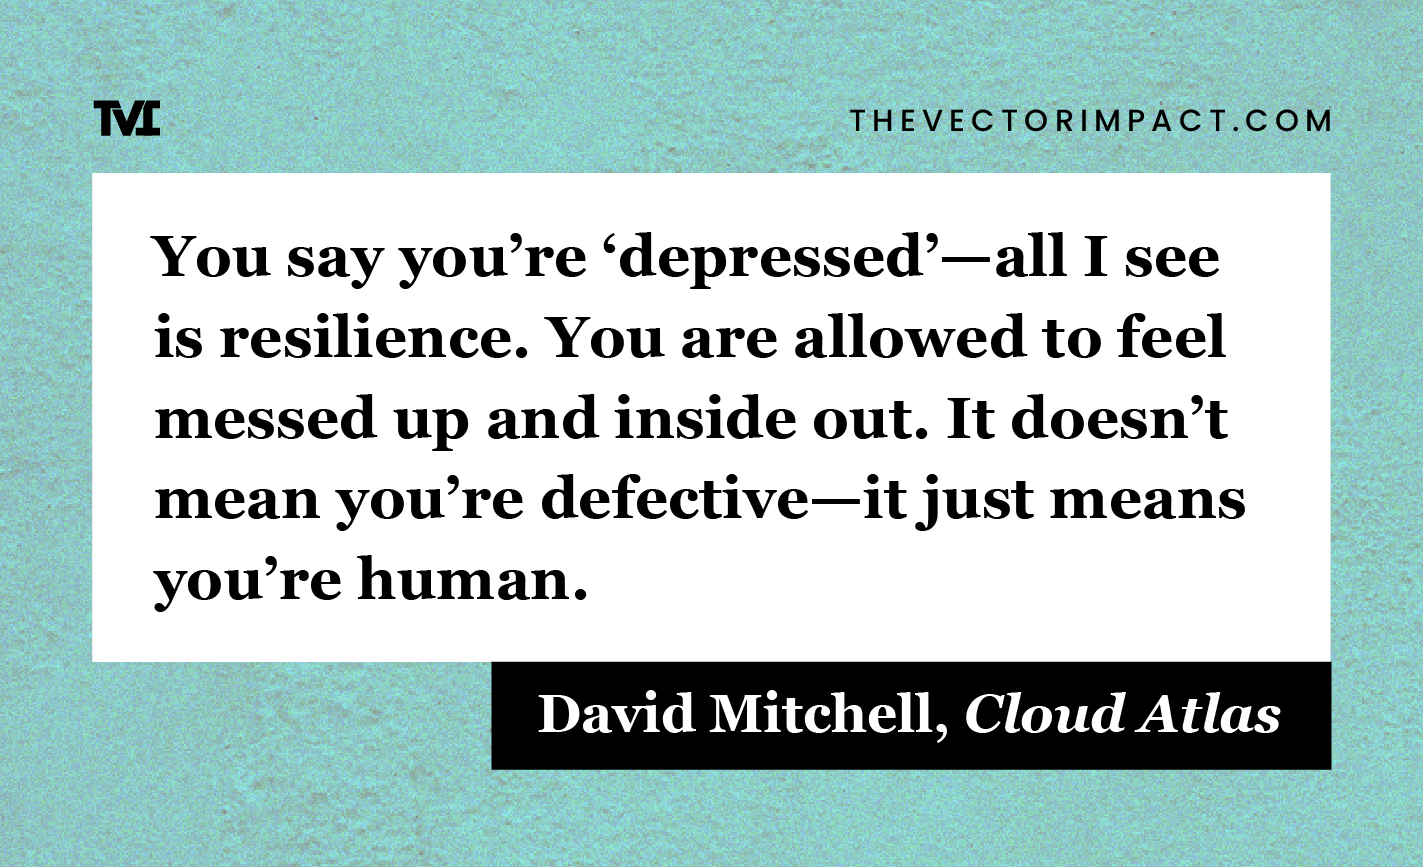 David Mitchell, Cloud Atlas, quote about depression graphic